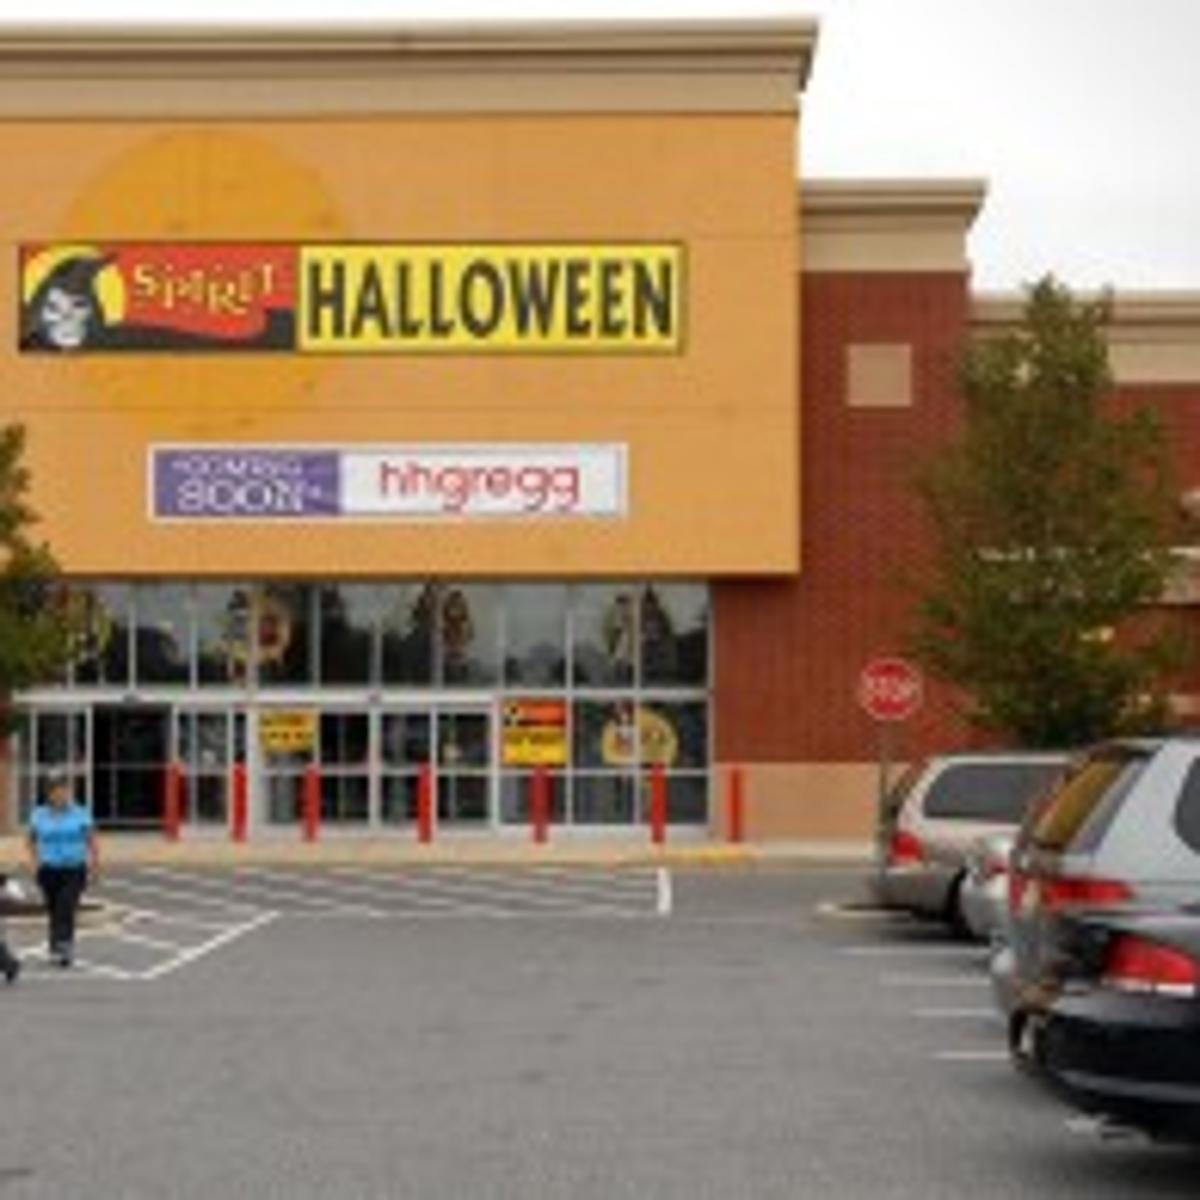 Electronics Retail Chain Hhgregg Coming To Hamilton Township